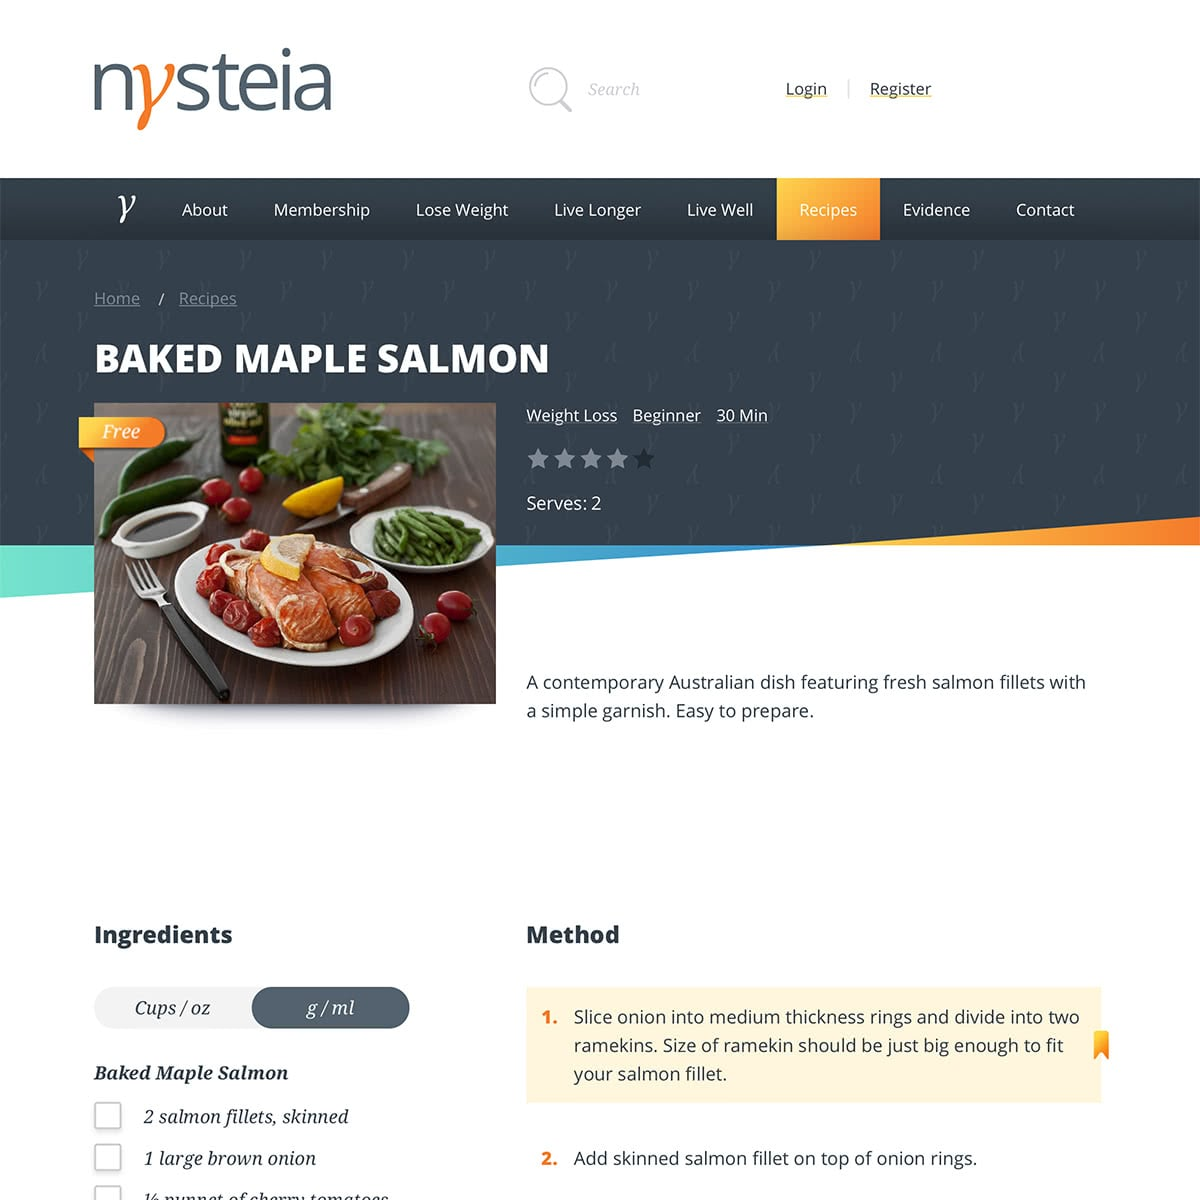 Recipe page - showing ingredients and method